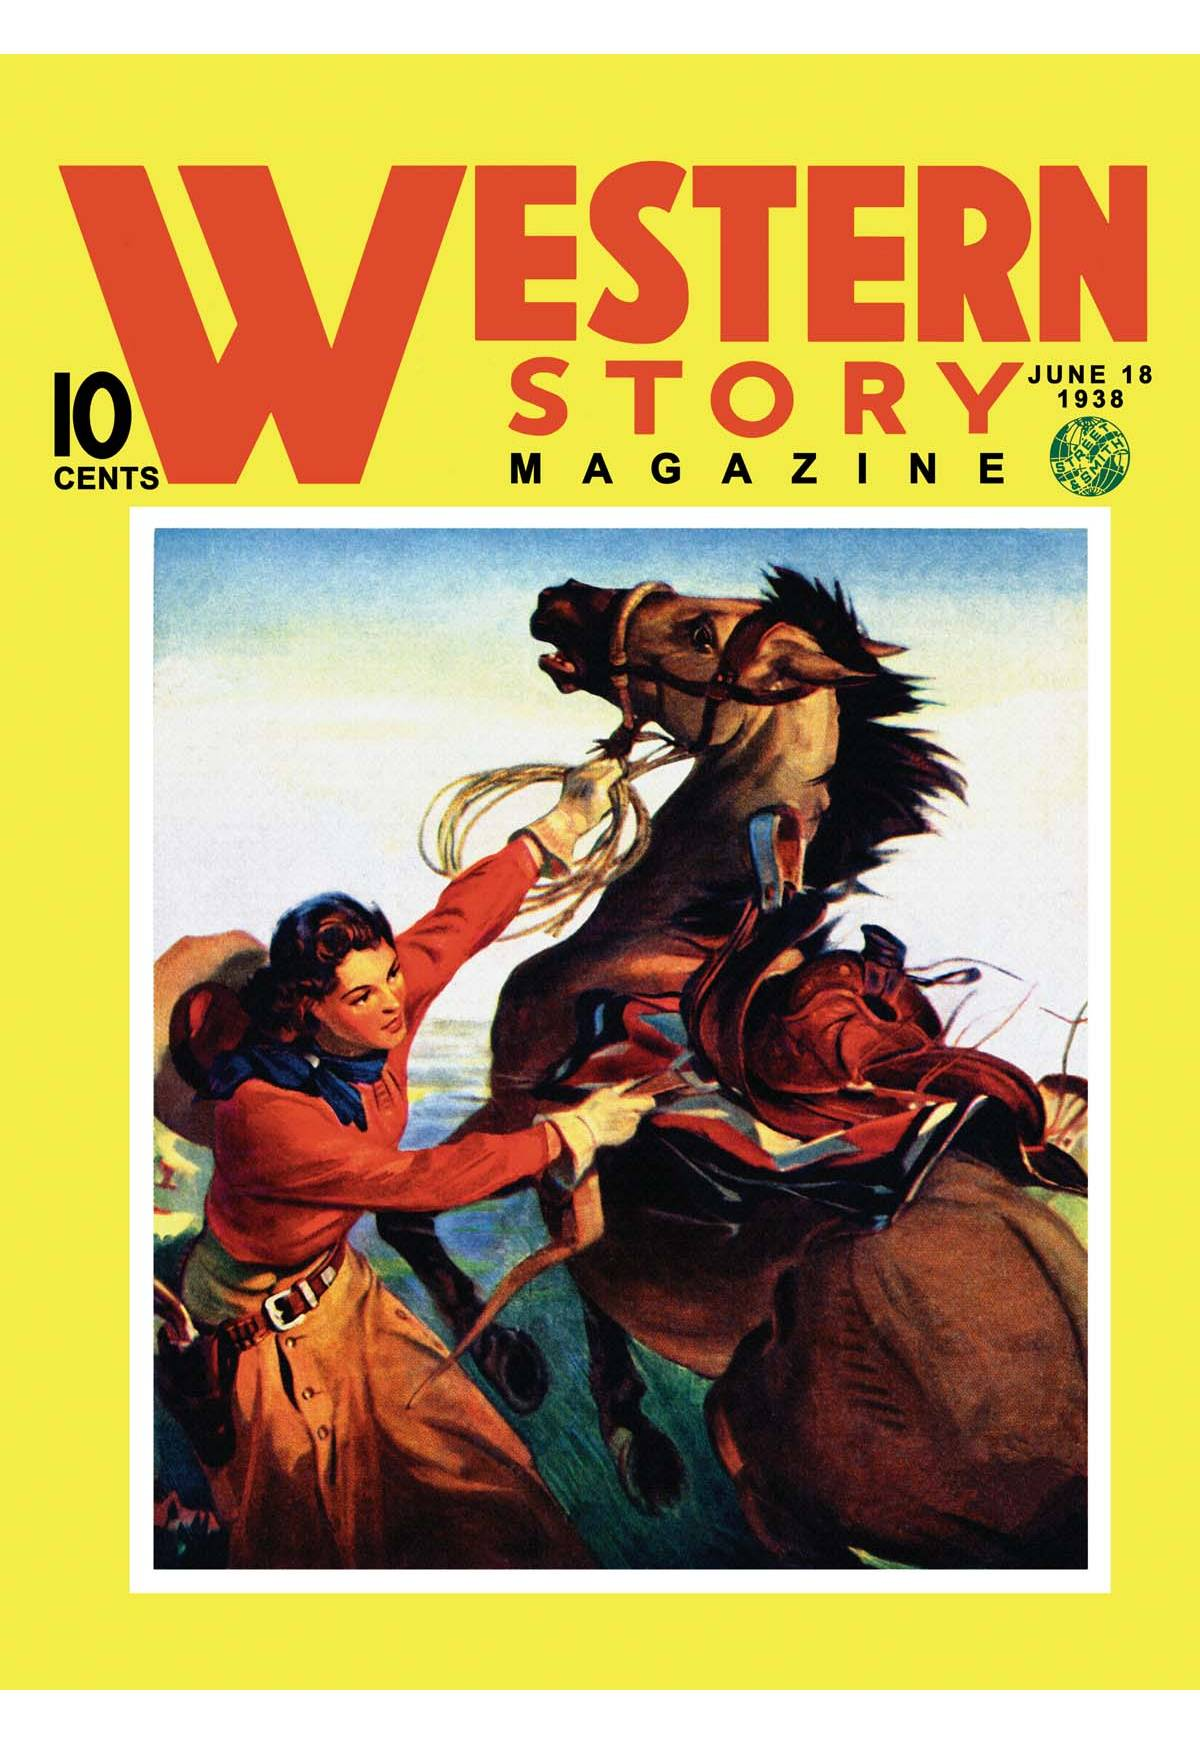 Old Book Cover Posters : Western story magazine she ruled the west posters and